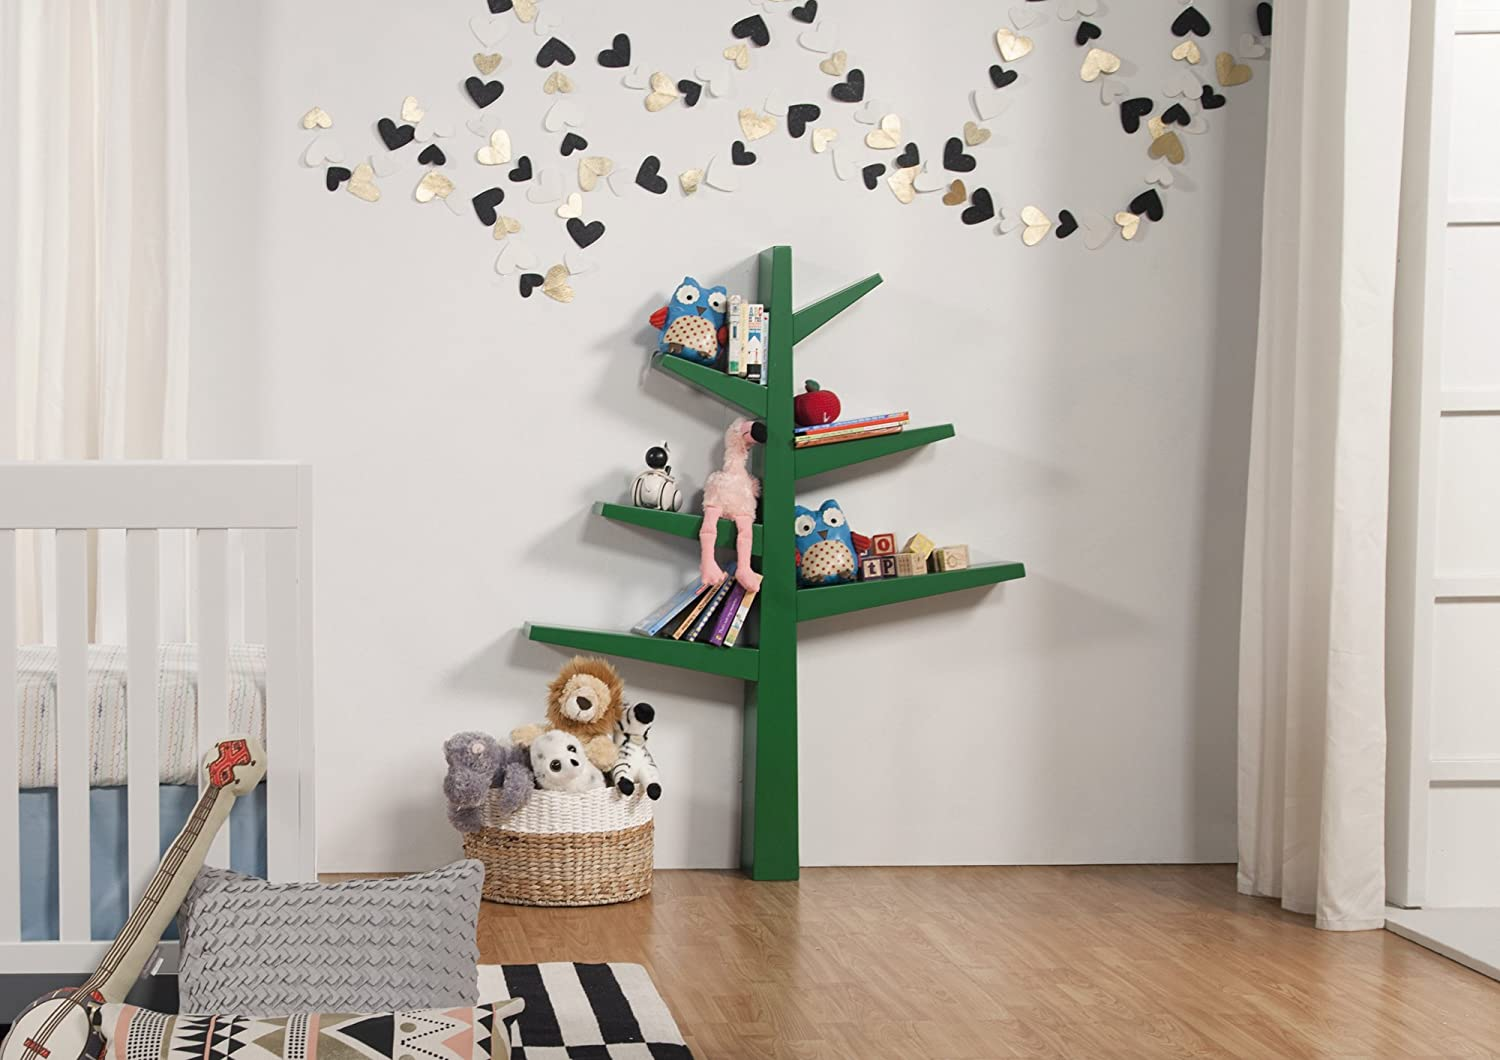 amazoncom babyletto spruce tree bookcase green baby -